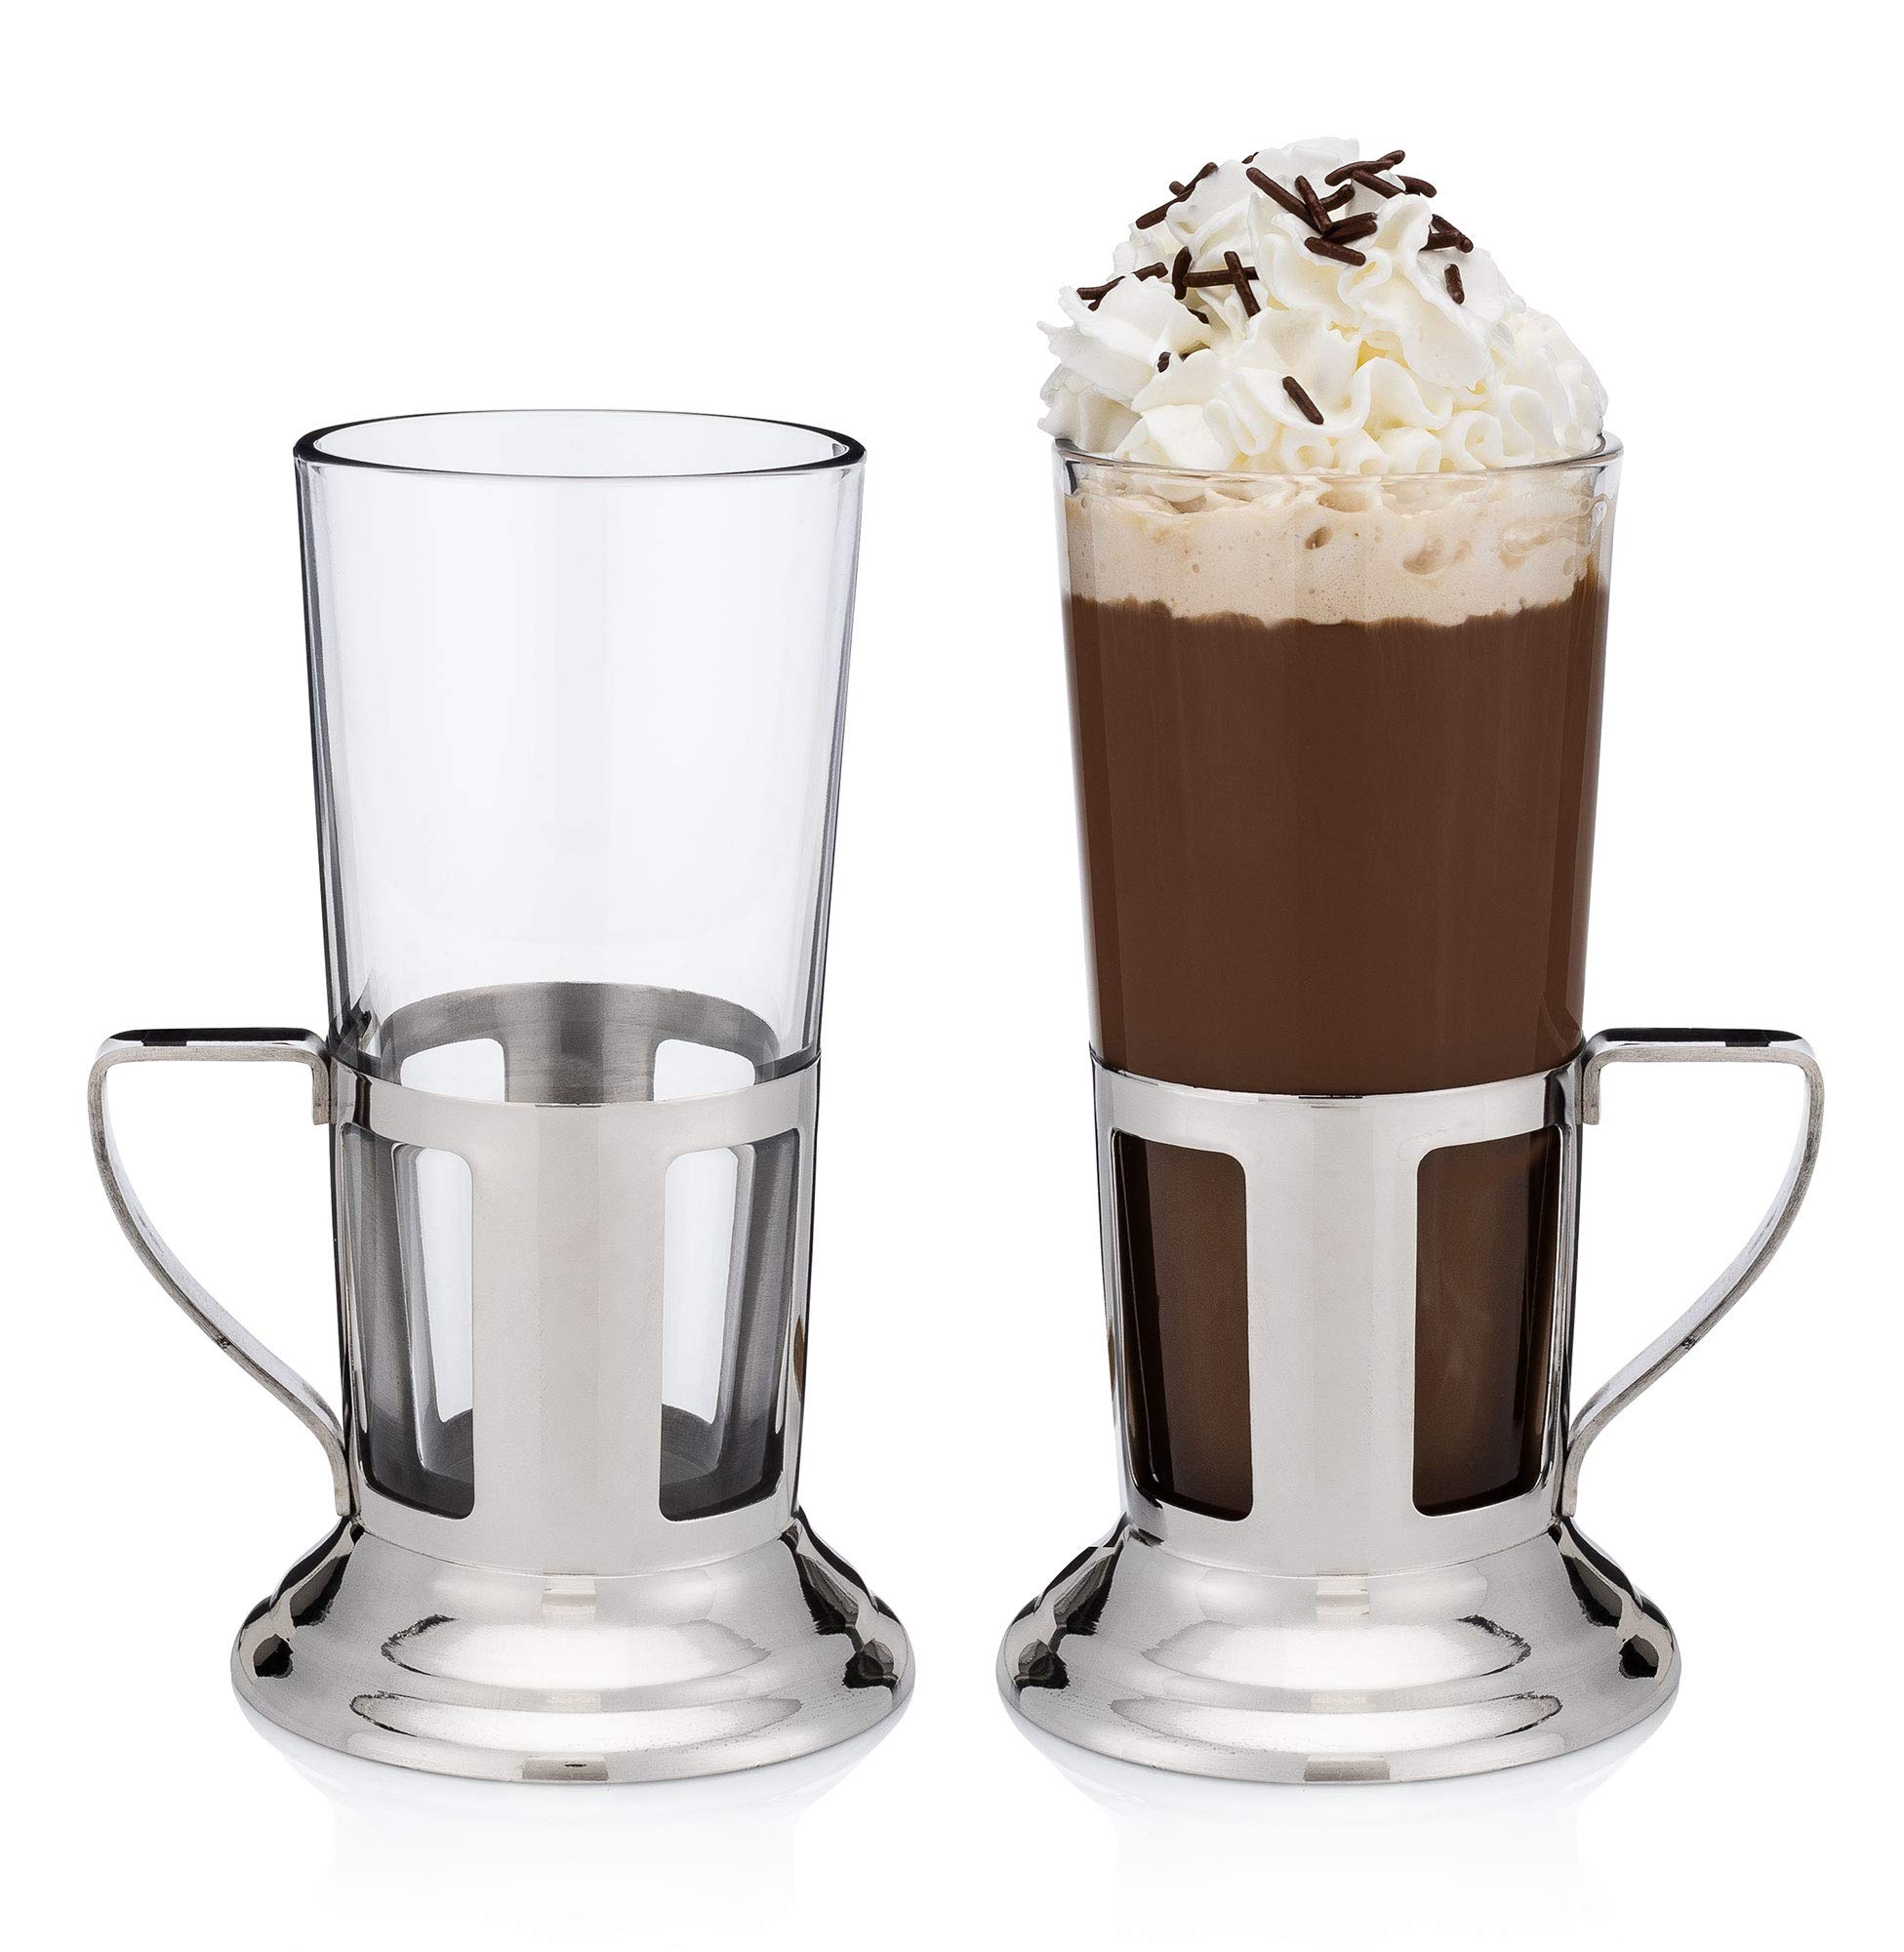 Irish Coffee and Hot Cocktails Glass with Stainless-Steel Holder (2 Two-Piece Sets)